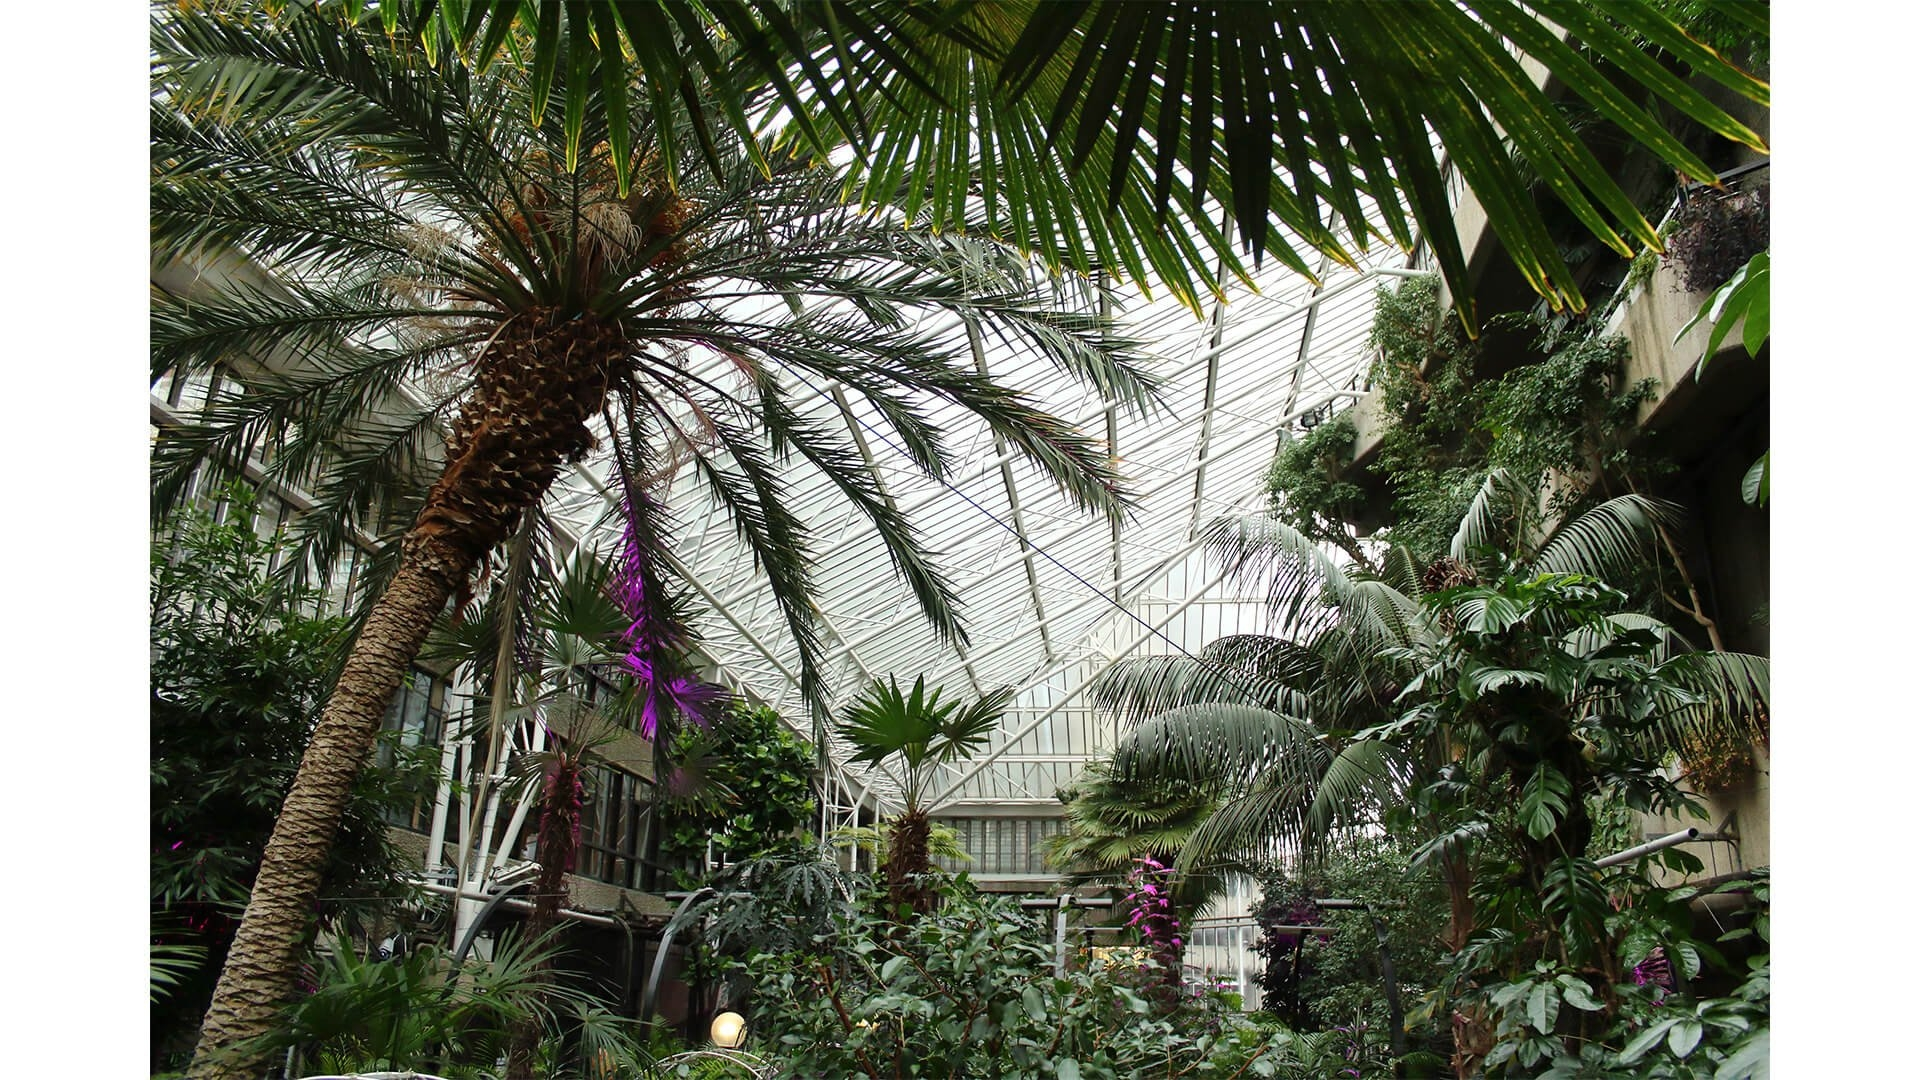 A leafy morning at the Barbican Conservatory provides inspiration for the next paper set